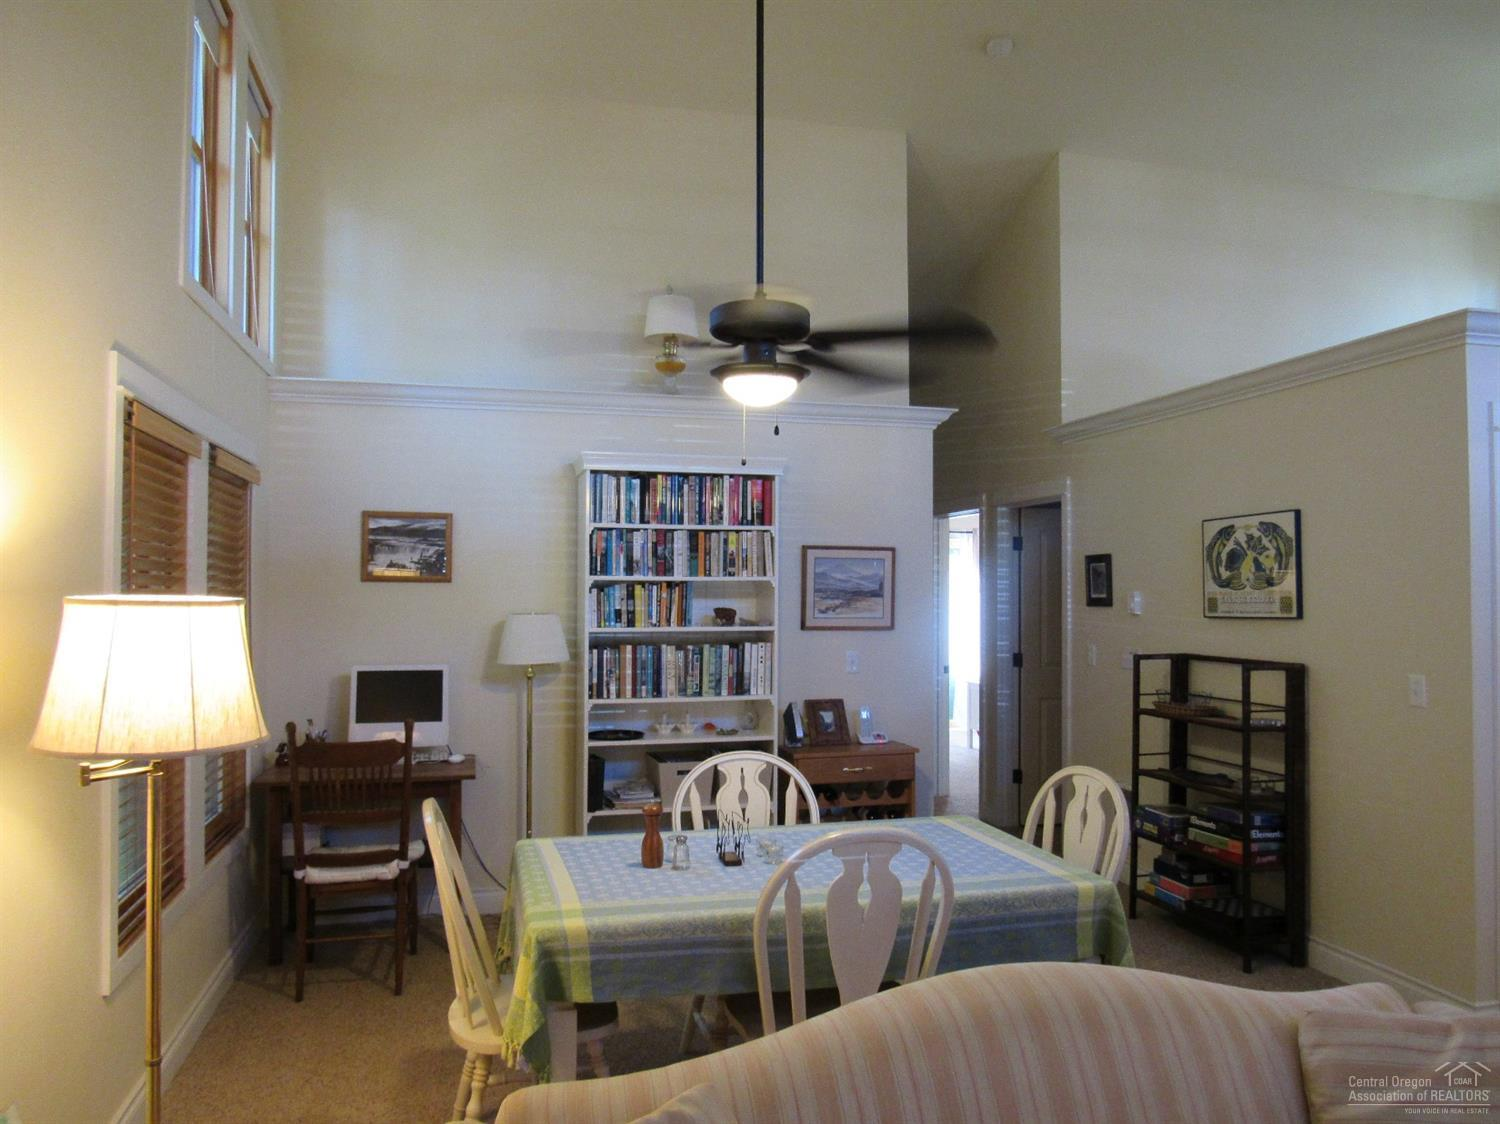 Great room with vaulted ceilings, dining area, liv